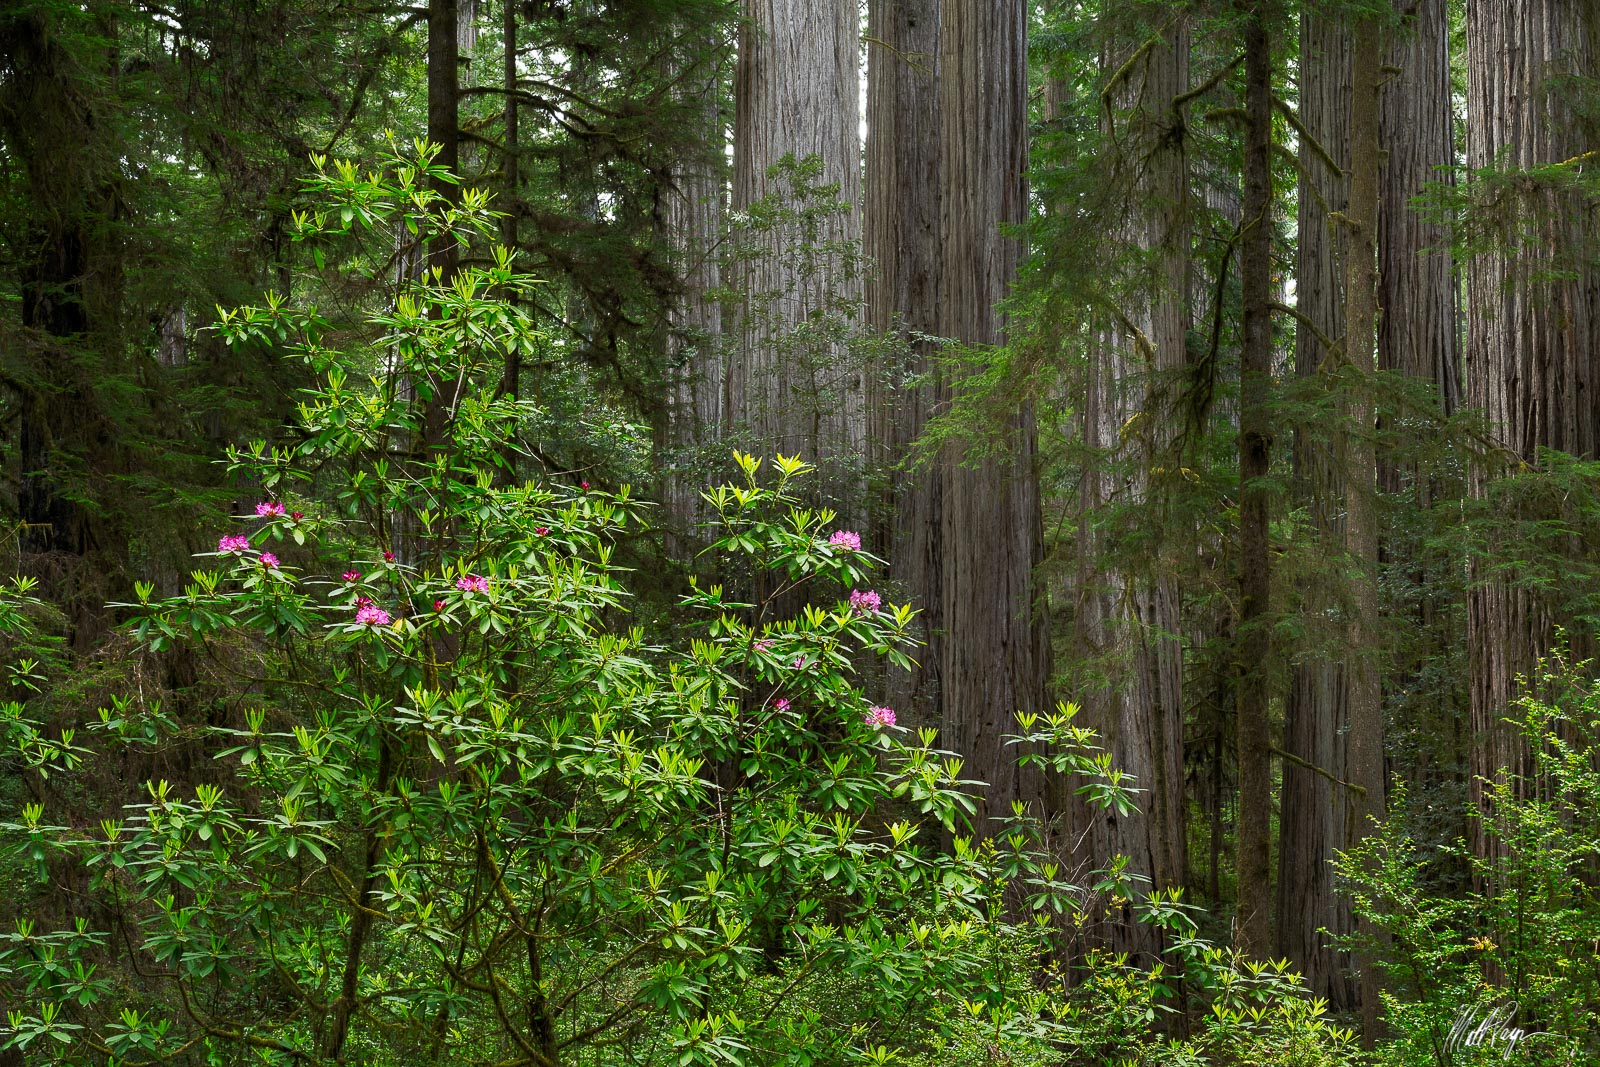 My friends Michael Bollino and Kane Engelbert and I wandered about the Redwoods forests in California in search of interesting...